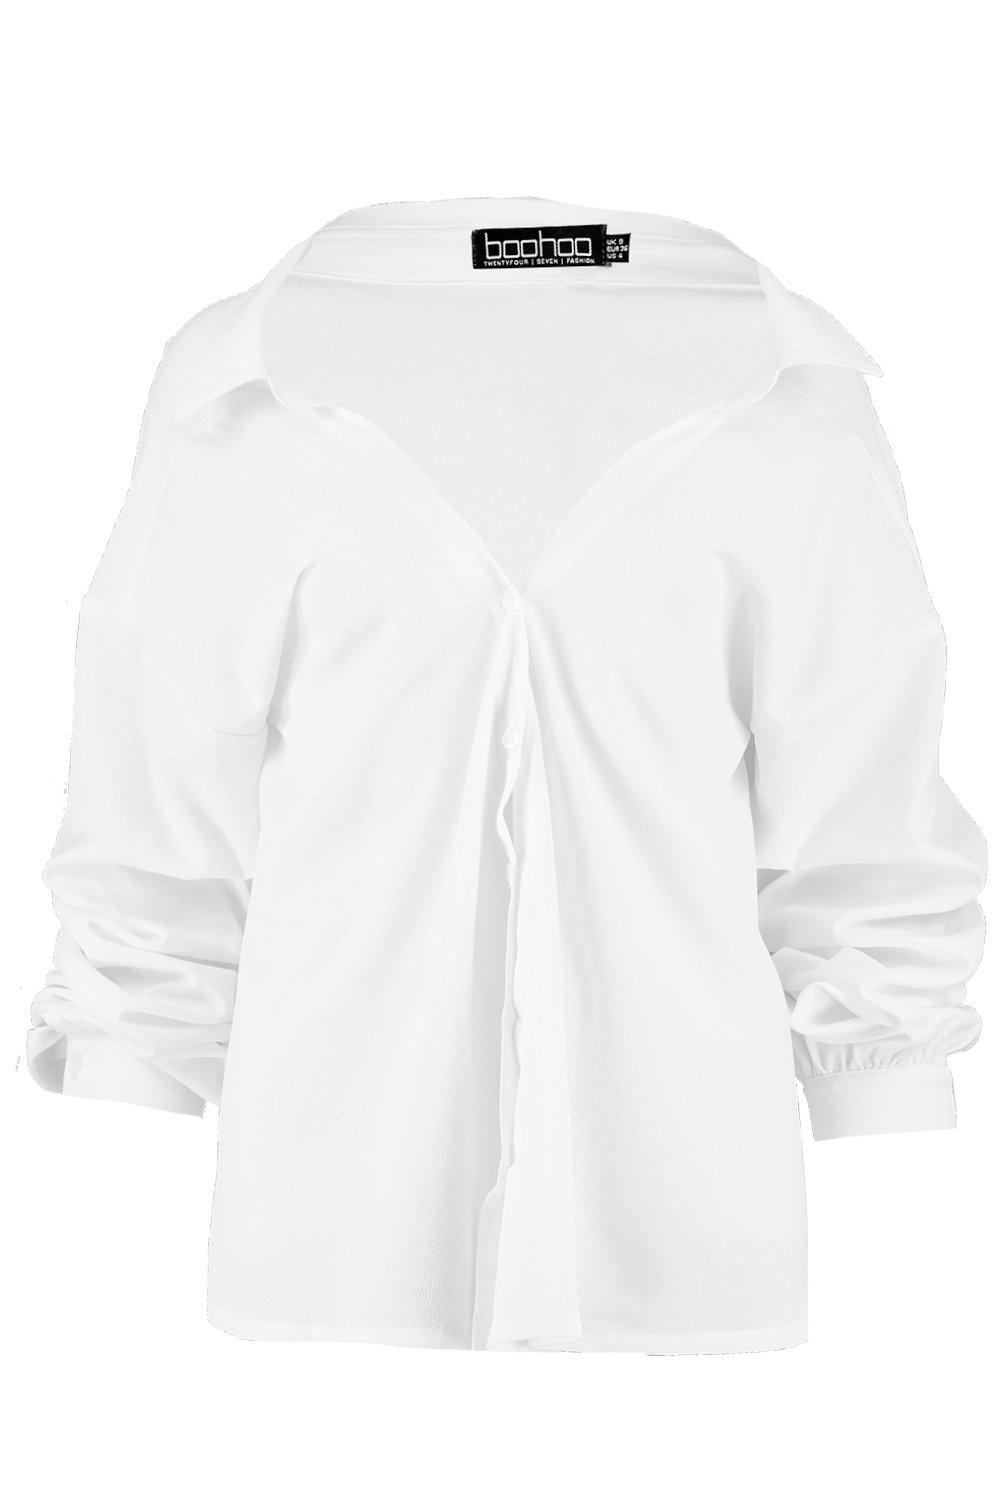 Tie Ruched white Blouse Front Sleeve r1qw5YXq